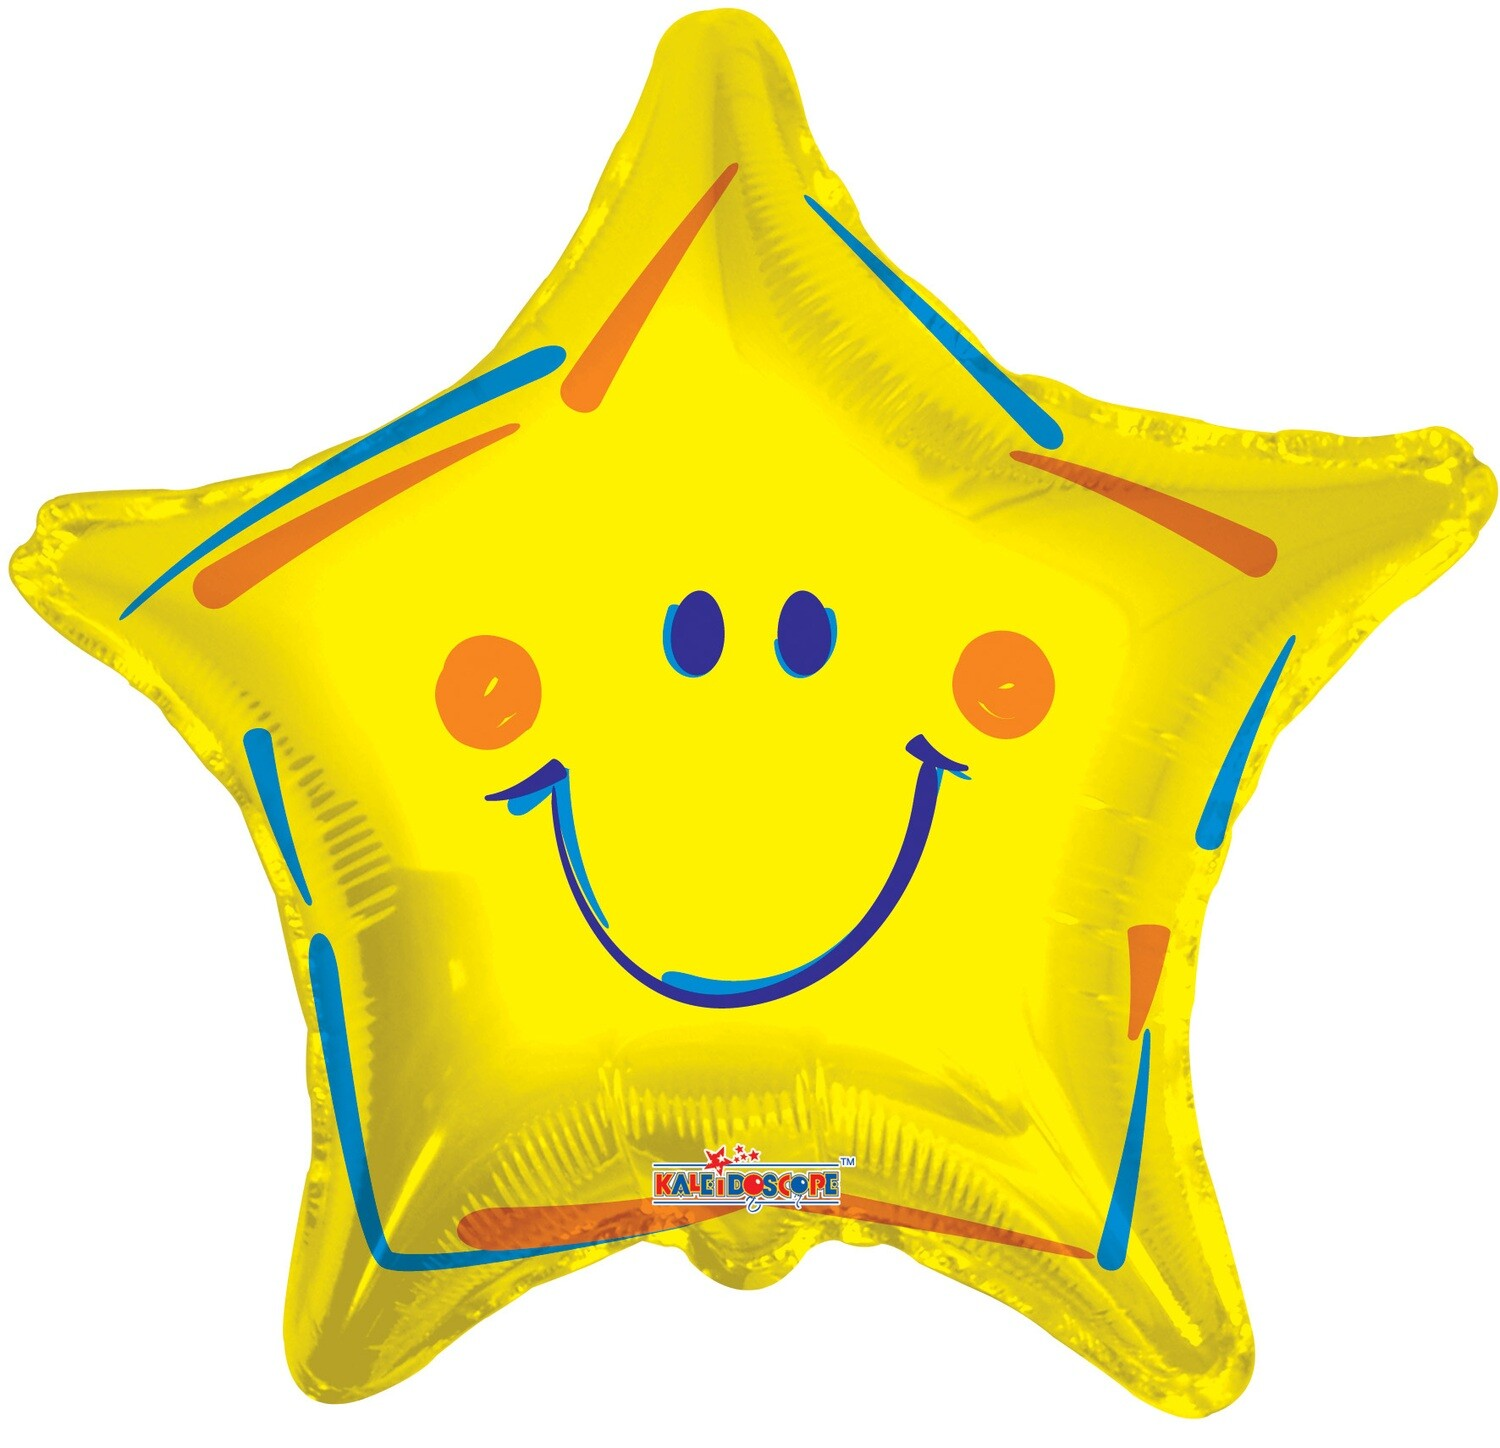 18 - STAR WITH SMILEY FACE GOLD